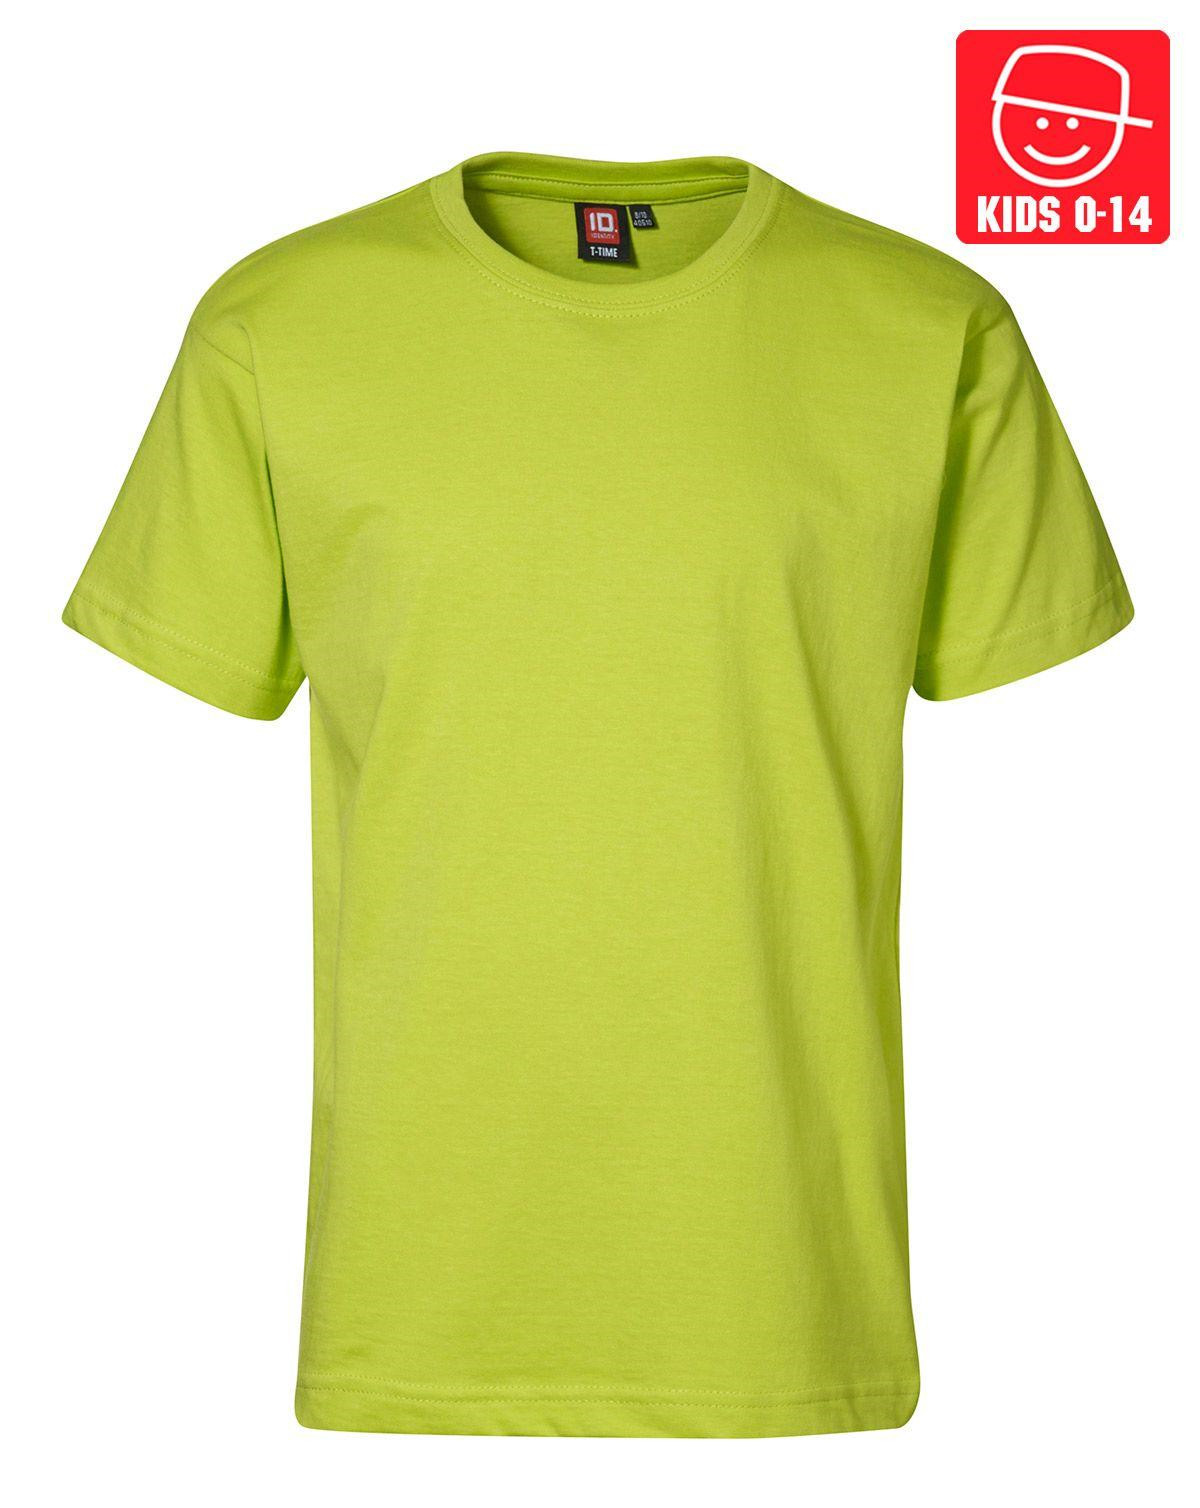 Image of   ID T-TIME T-shirt (Lime, K122)